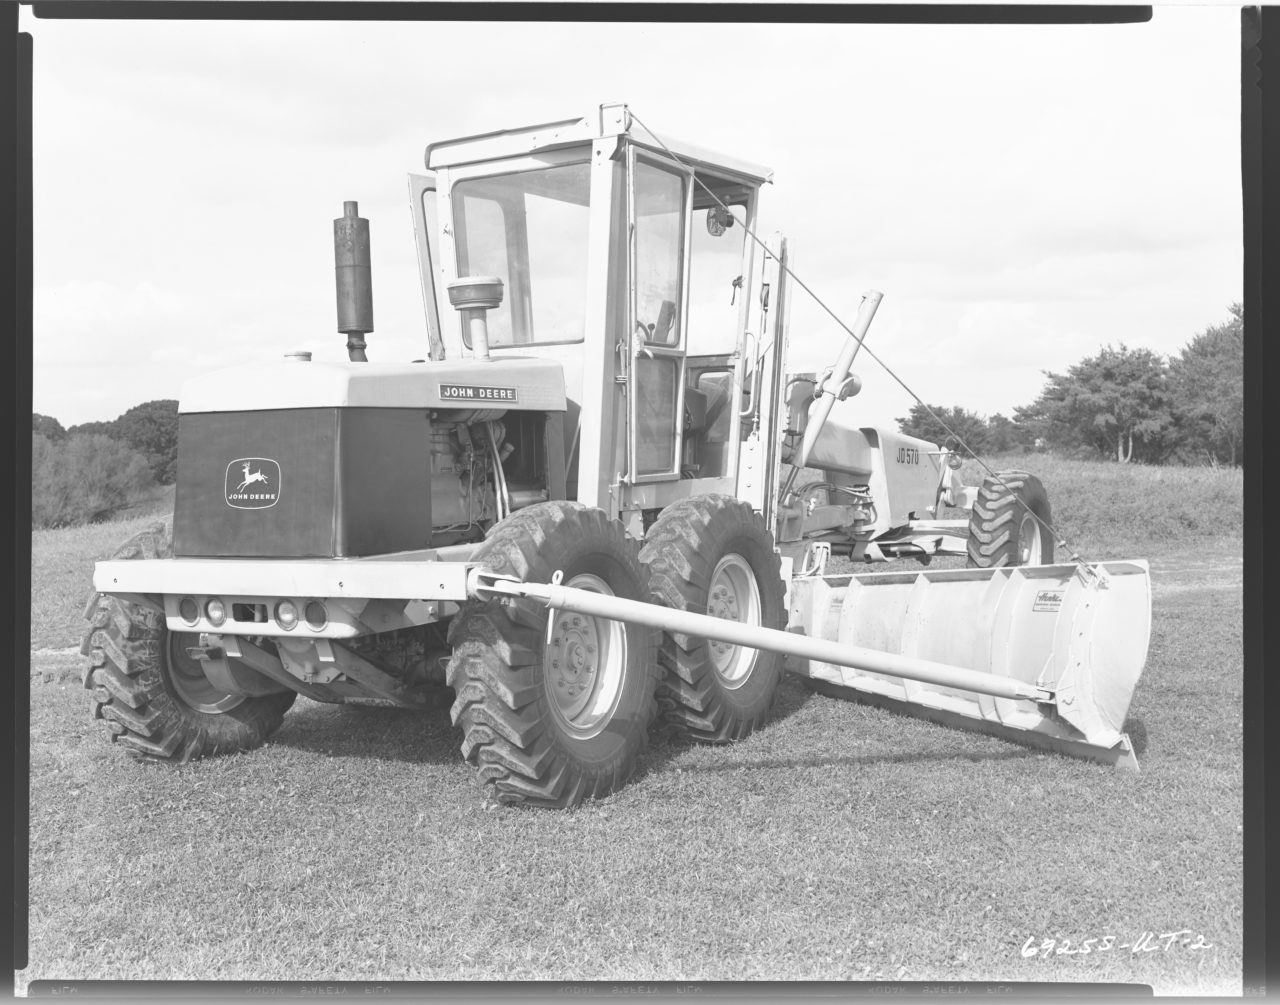 Straight from the John Deere Archives, The JD570 Motor Grader in action.